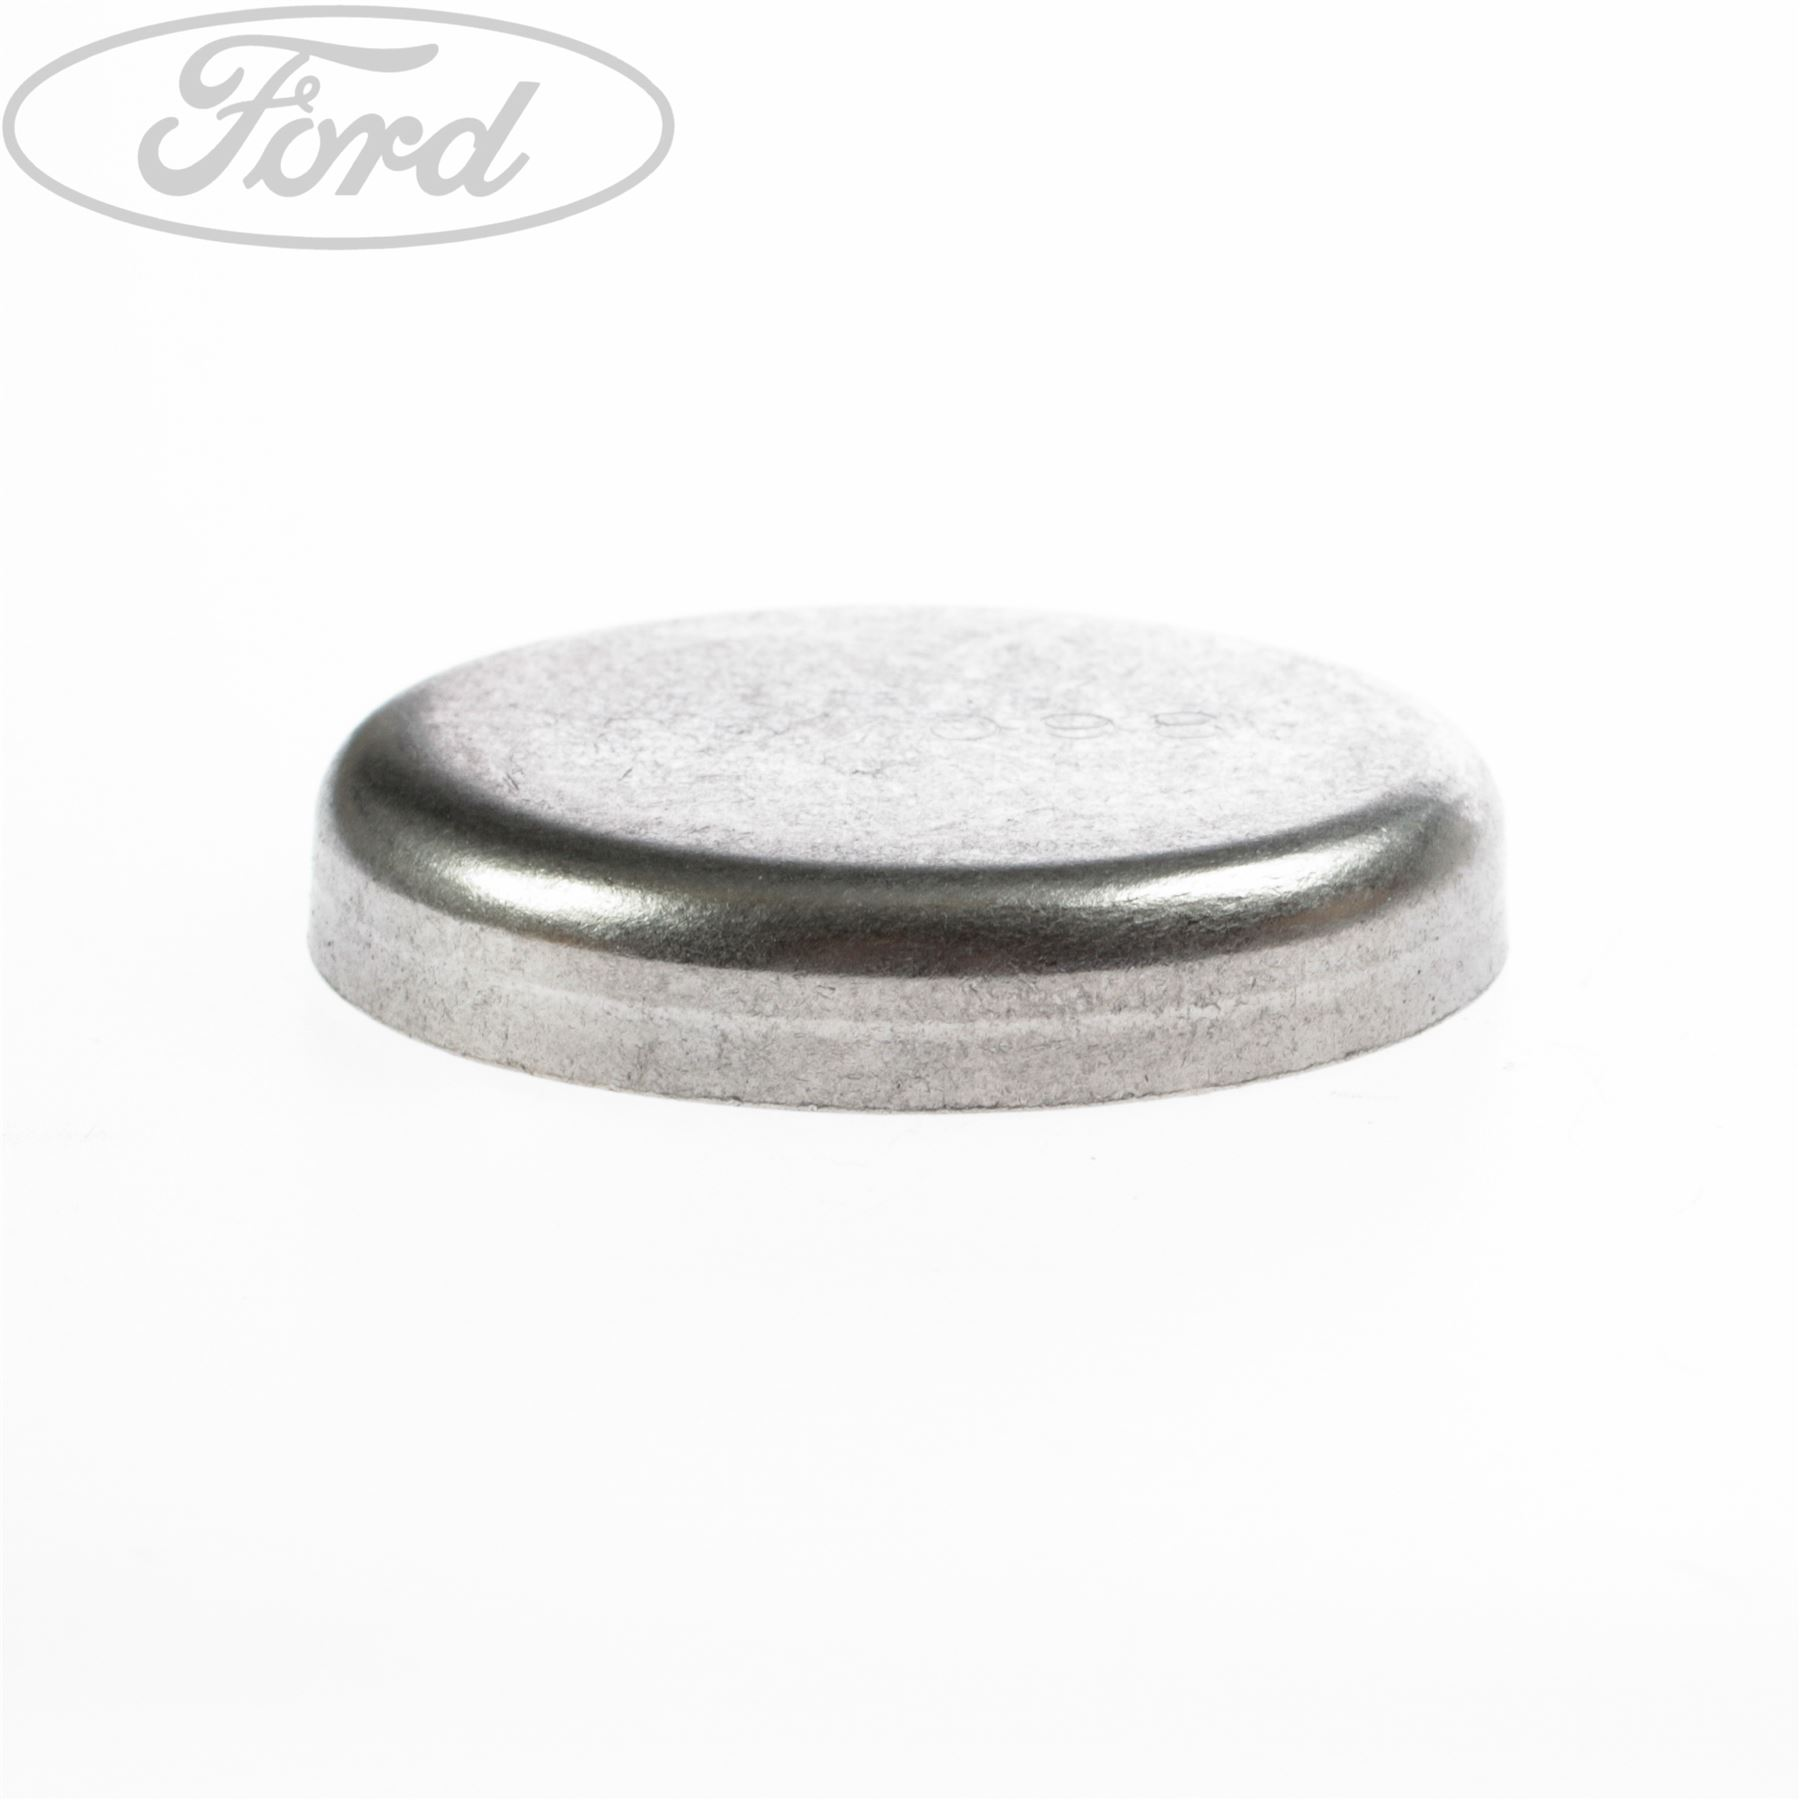 Genuine Ford Cylinder Head Expansion Plug 1000478